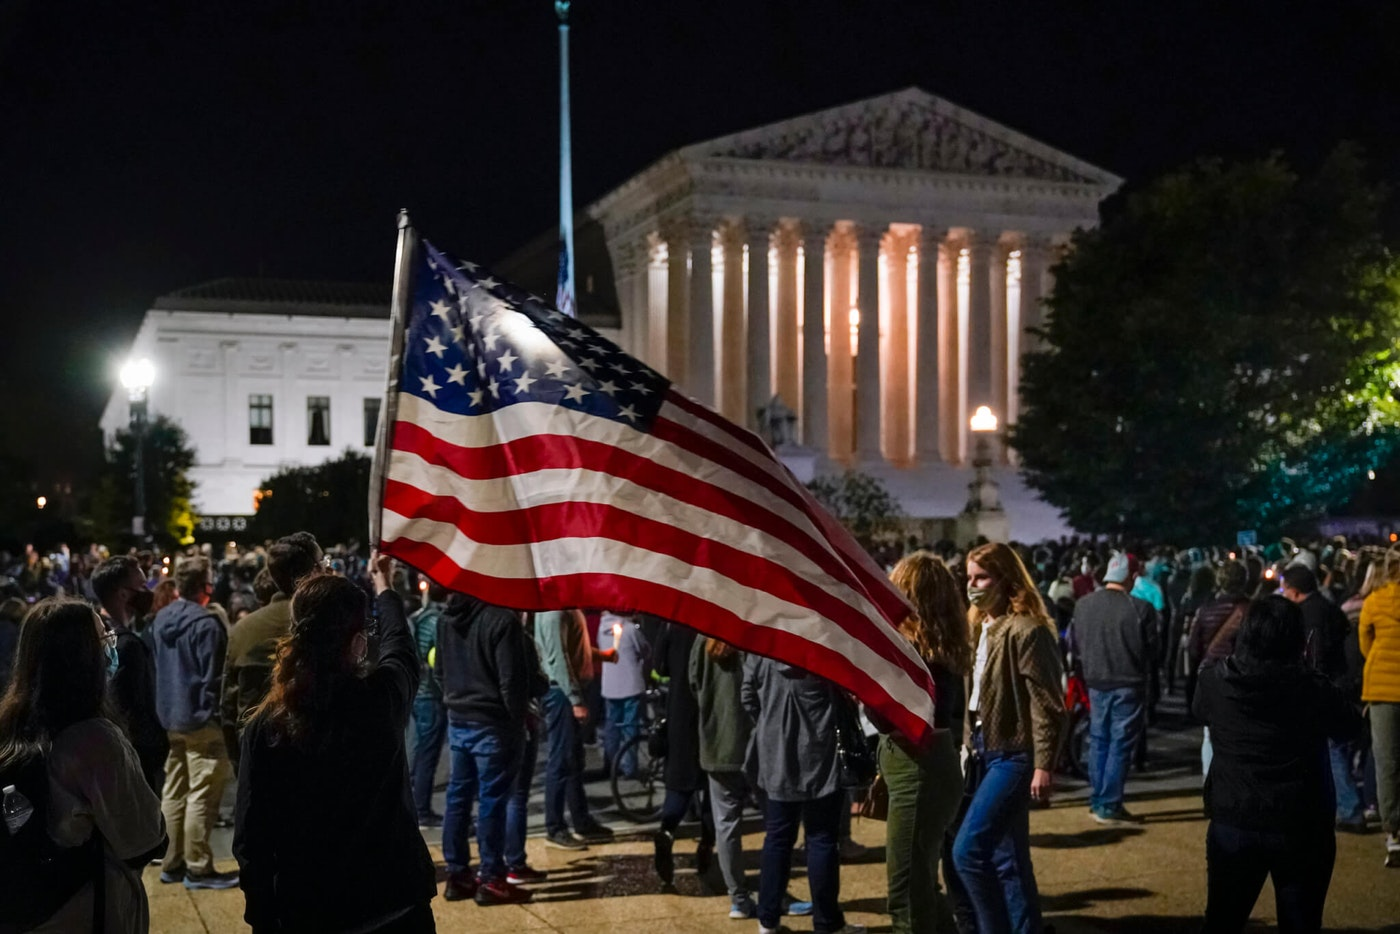 People gather at the Supreme Court in Washington, Saturday night, Sept. 19, 2020, to honor the late Justice Ruth Bader Ginsburg, one of the high court's liberal justices, and a champion of gender equality. Her death leaves a vacancy that could be filled with a more conservative justice by President Donald Trump. (AP Photo/J. Scott Applewhite)